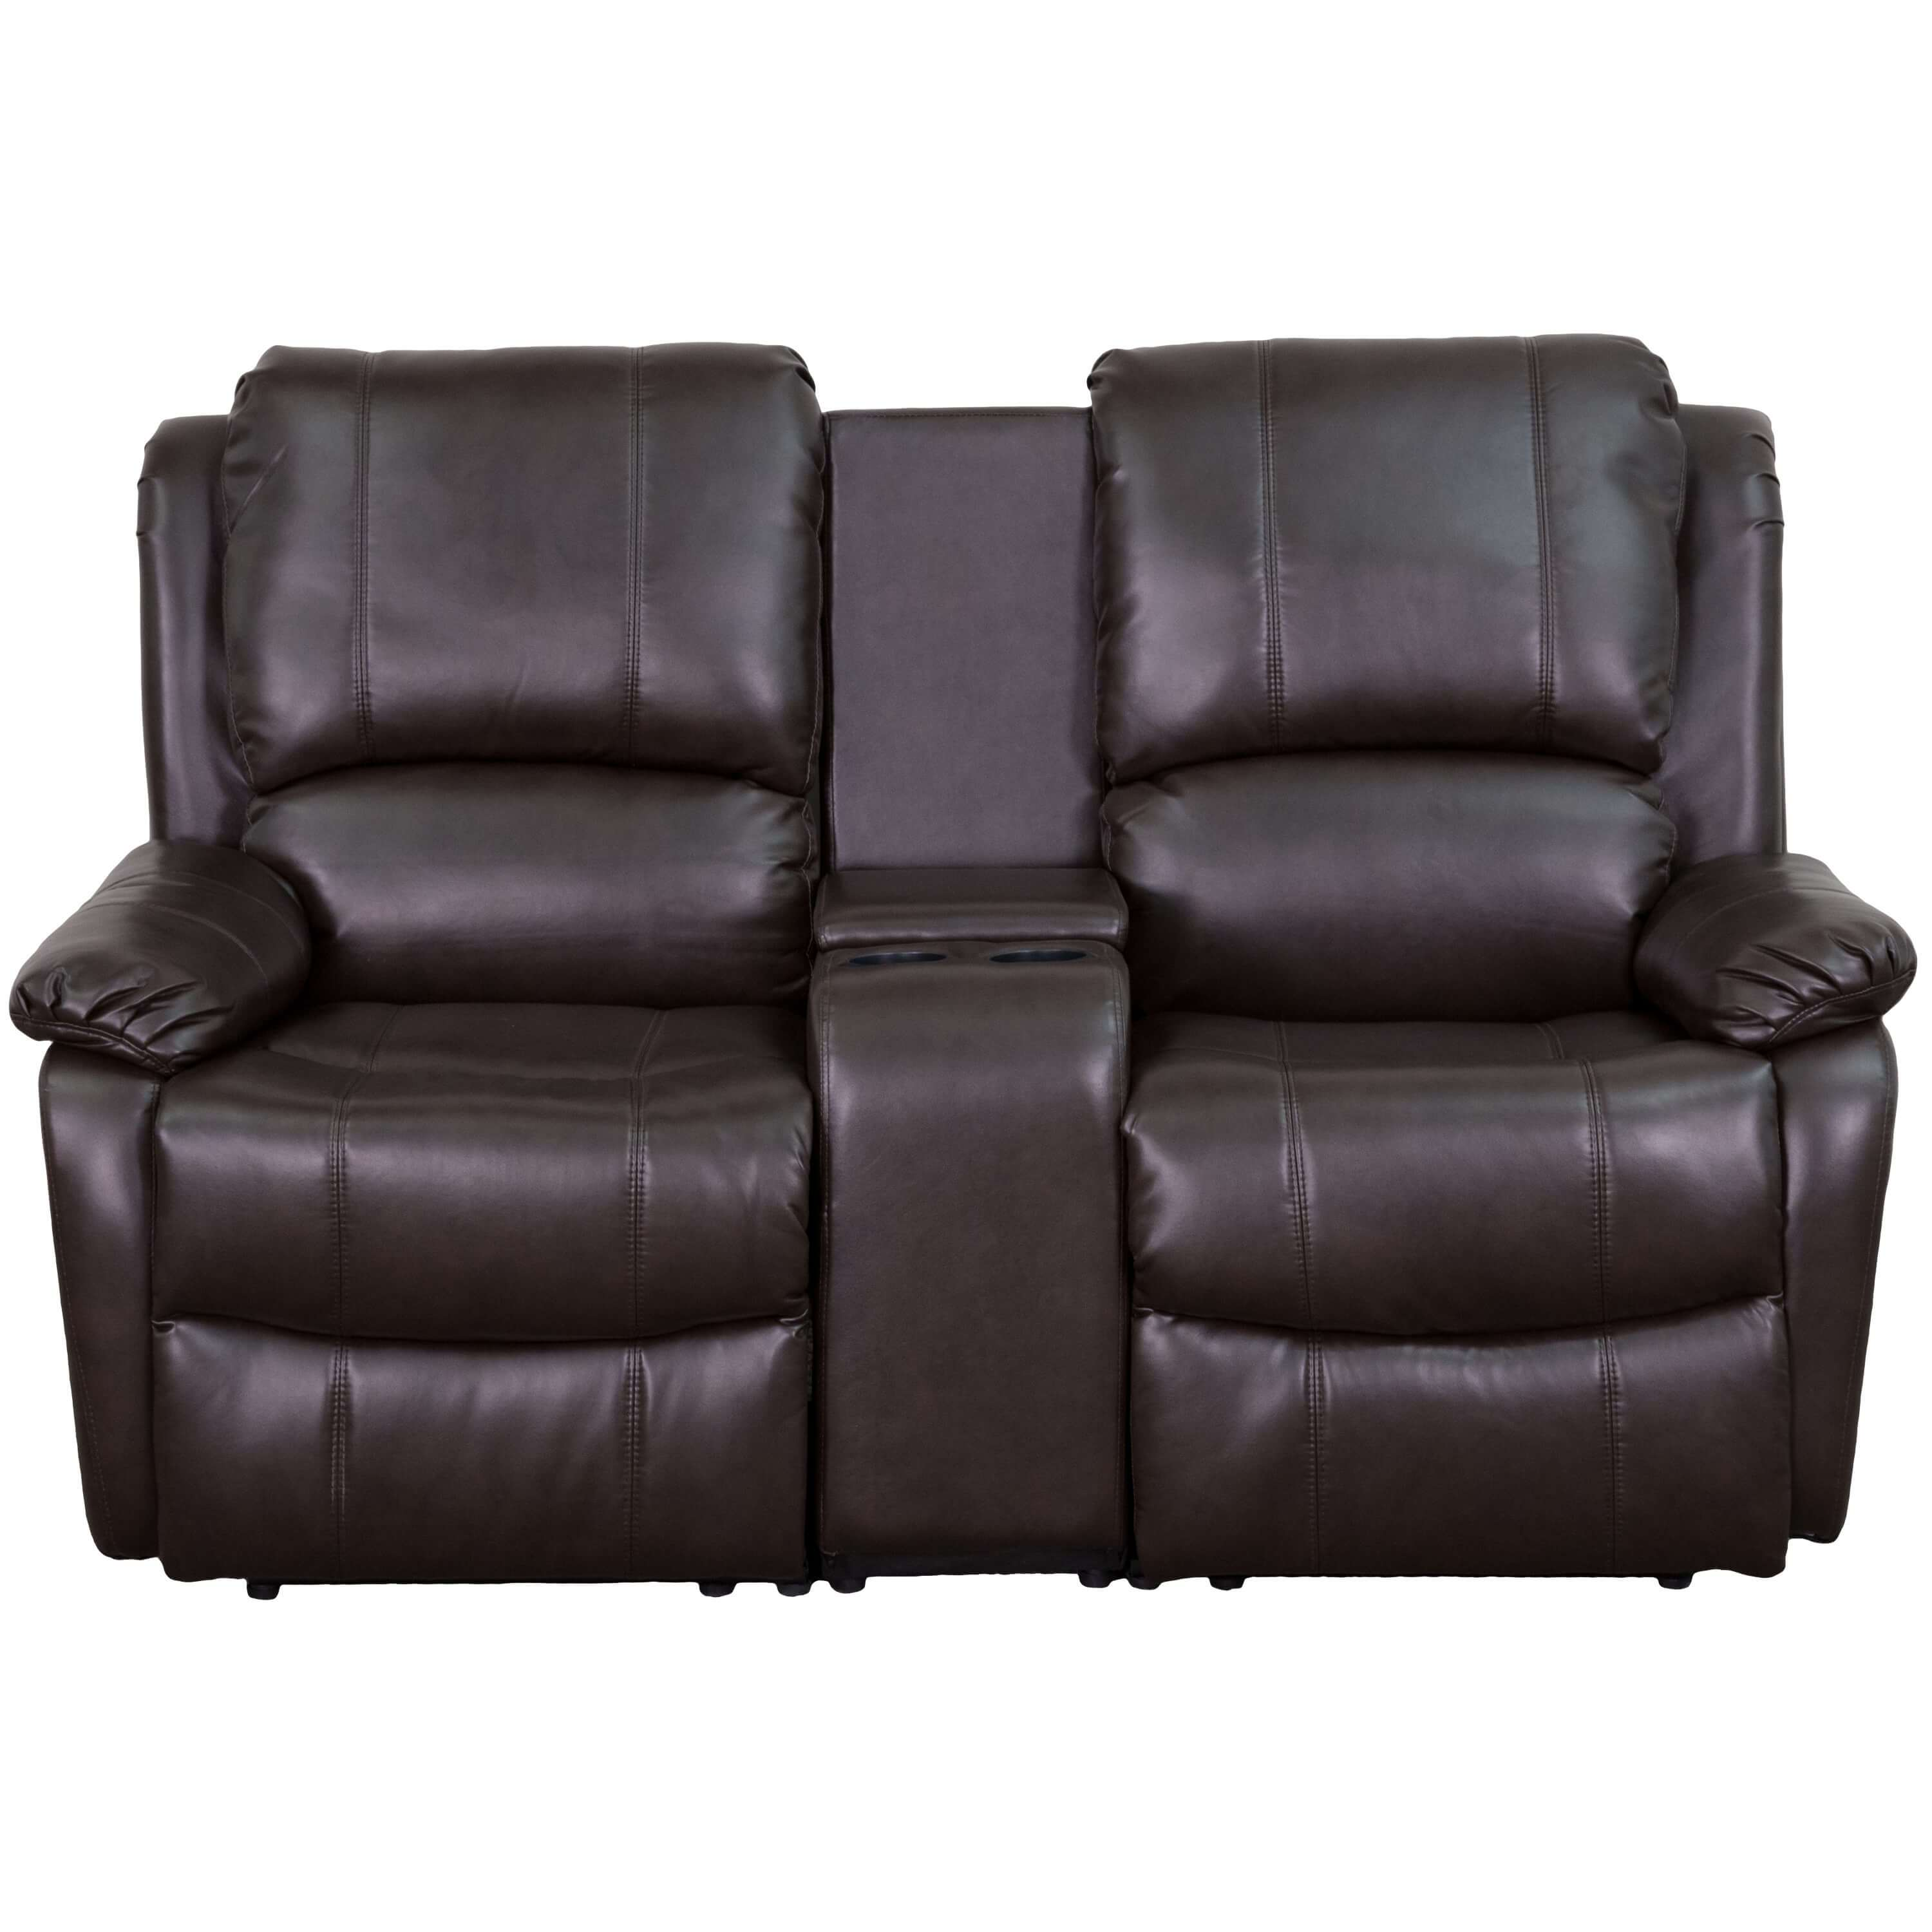 theater chairs with cup holders ikea furniture bergman recliner chair holder